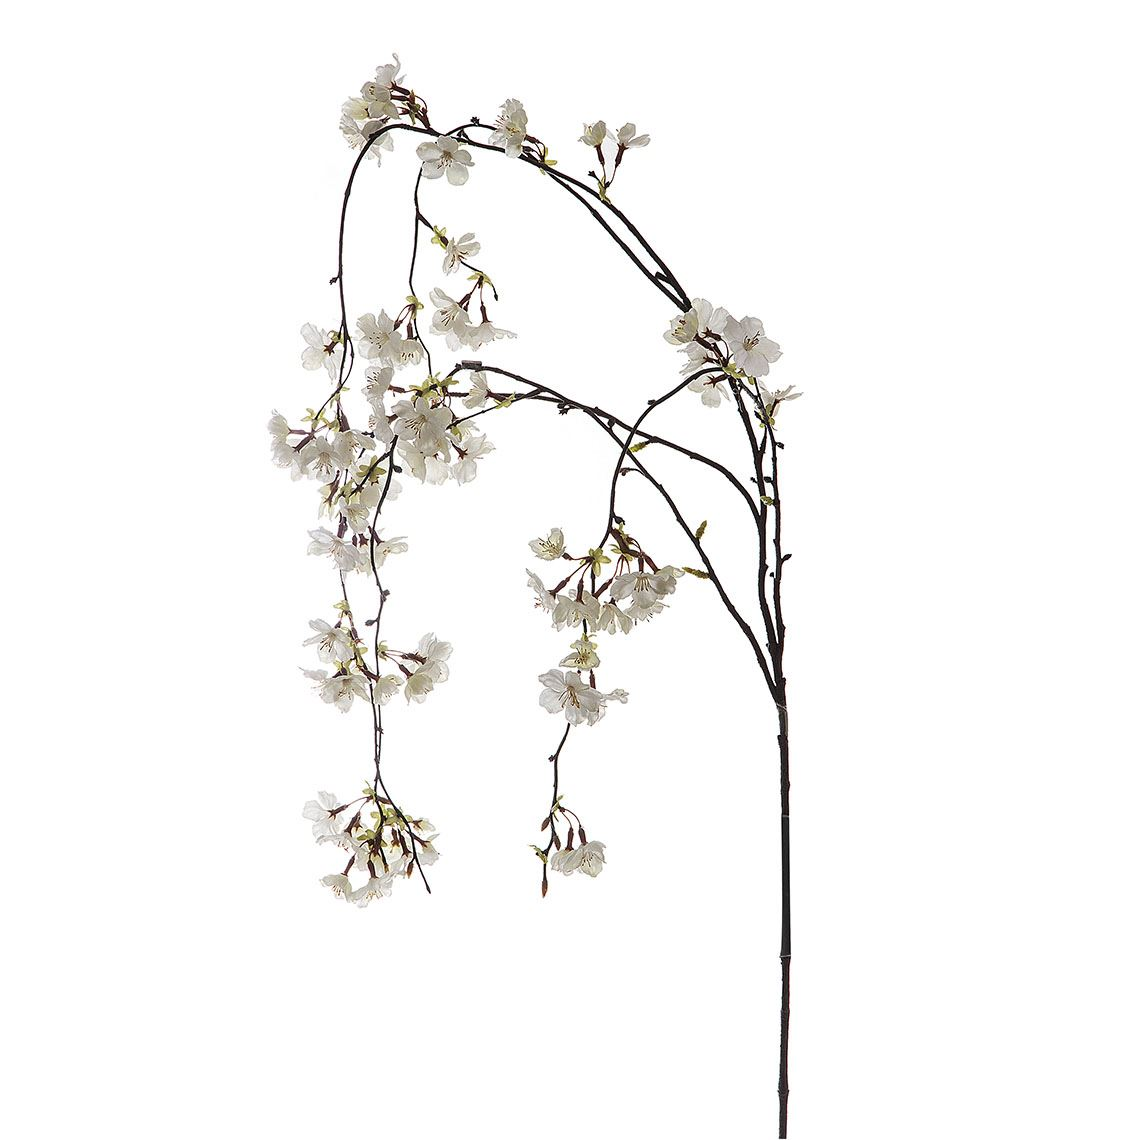 Cherry Blossom Size W 17cm x D 5cm x H 119cm in White Fabric/Wire Freedom by Freedom, a Plants for sale on Style Sourcebook